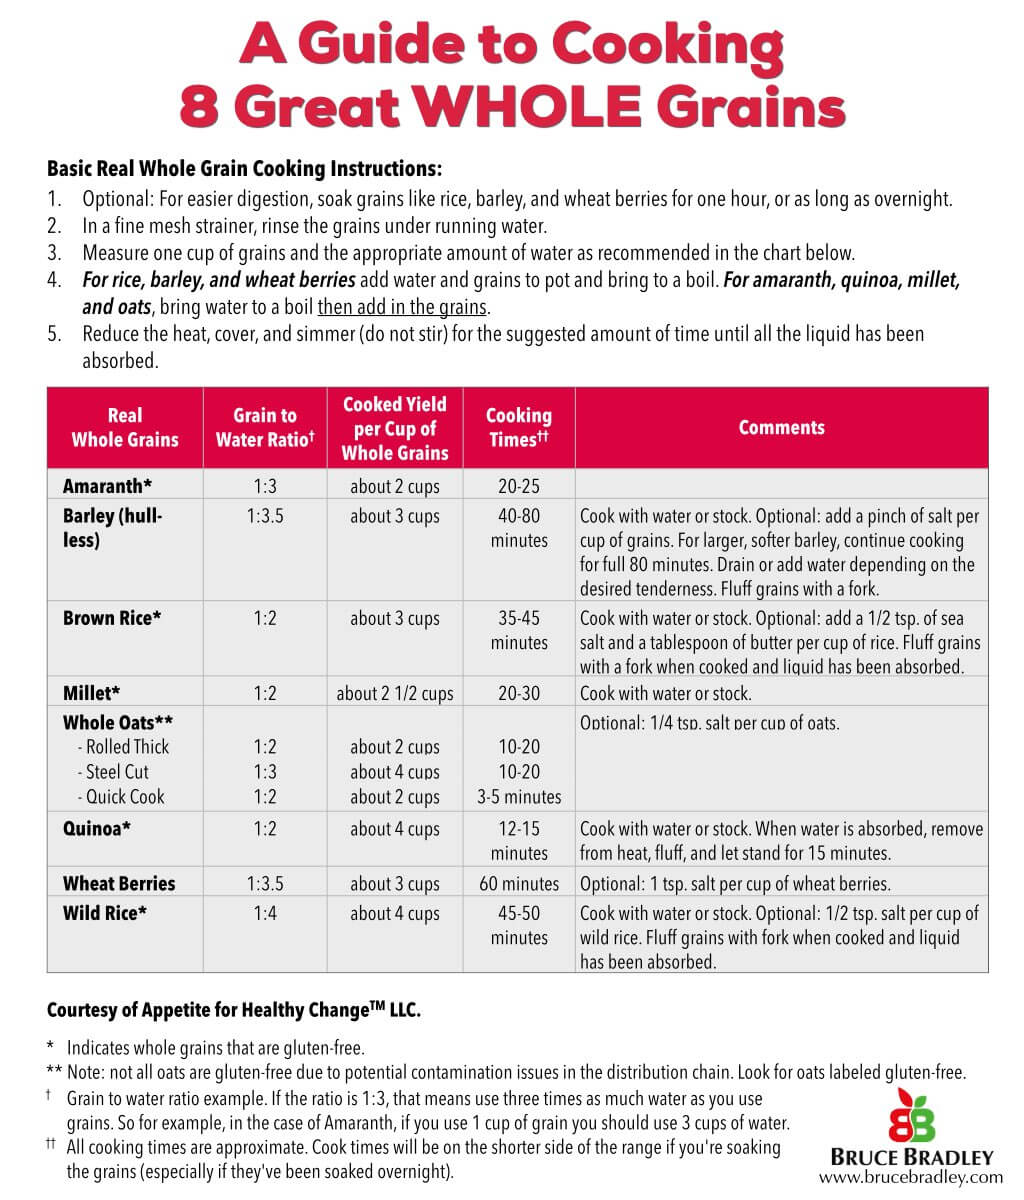 Learn how to cook 8 GREAT whole grains.